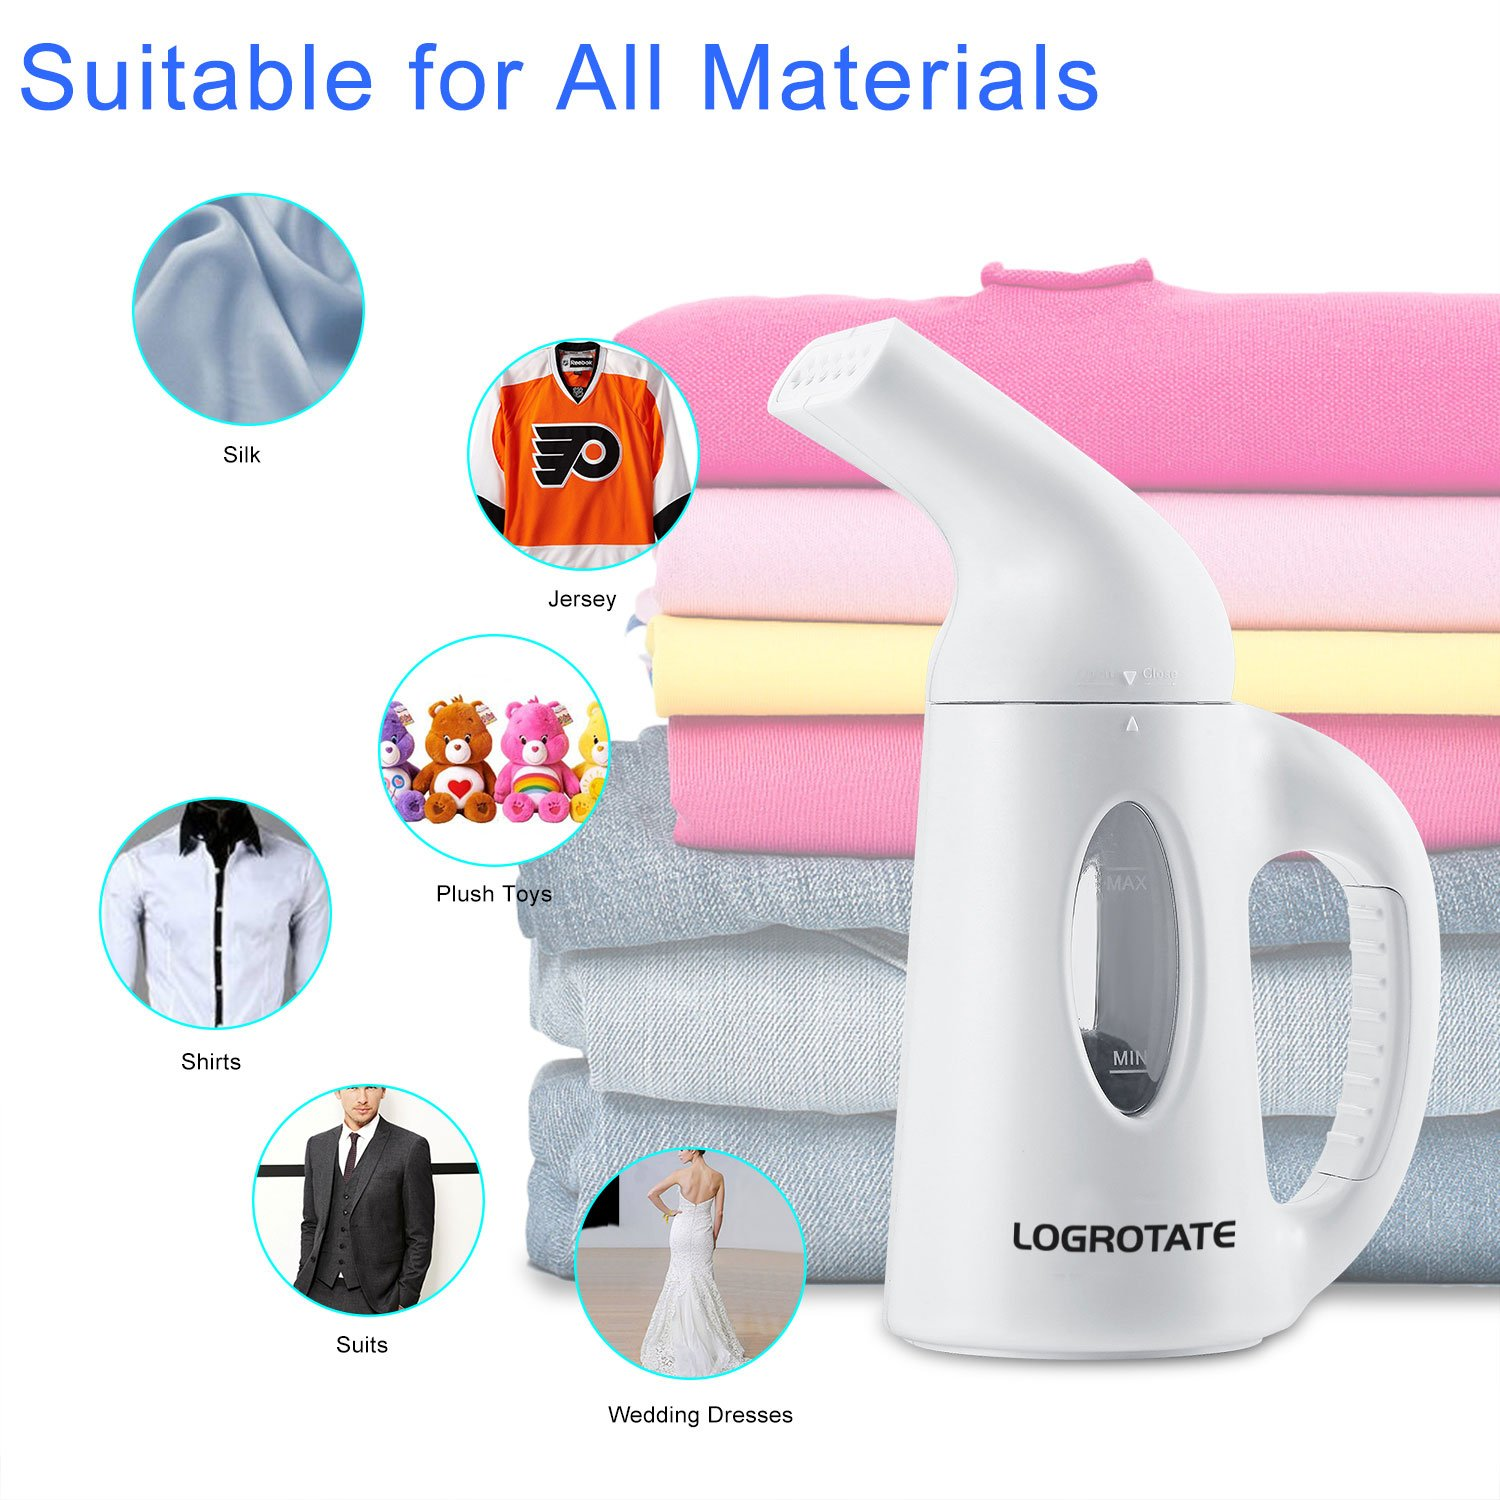 LOGROTATE Fabric Steamer 120ML Travel Garment Steamer Handheld Portable Mini Fast Heat-up Clothes Steamer for Clothes Linen Shirts Bedding Suits Curtains When at Home or Travel